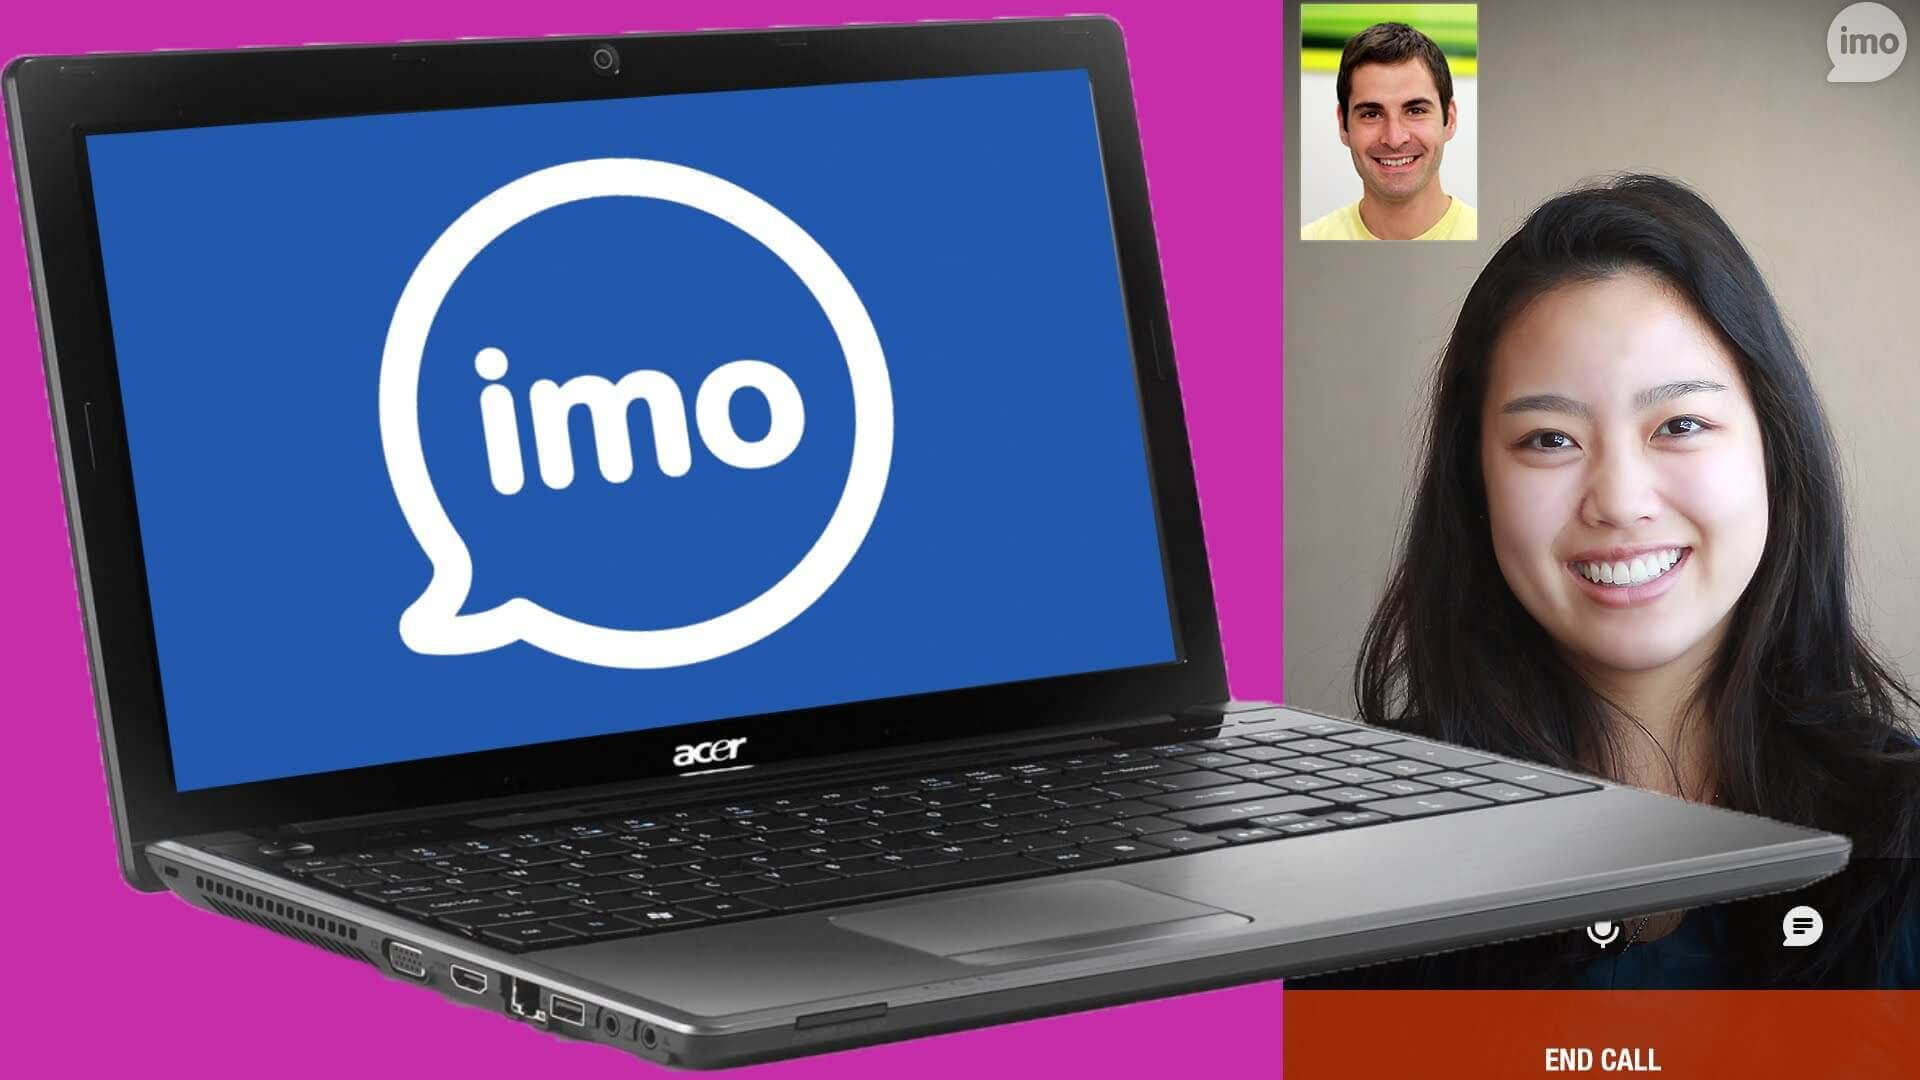 Learn and download IMO messenger apk for Android. Imo